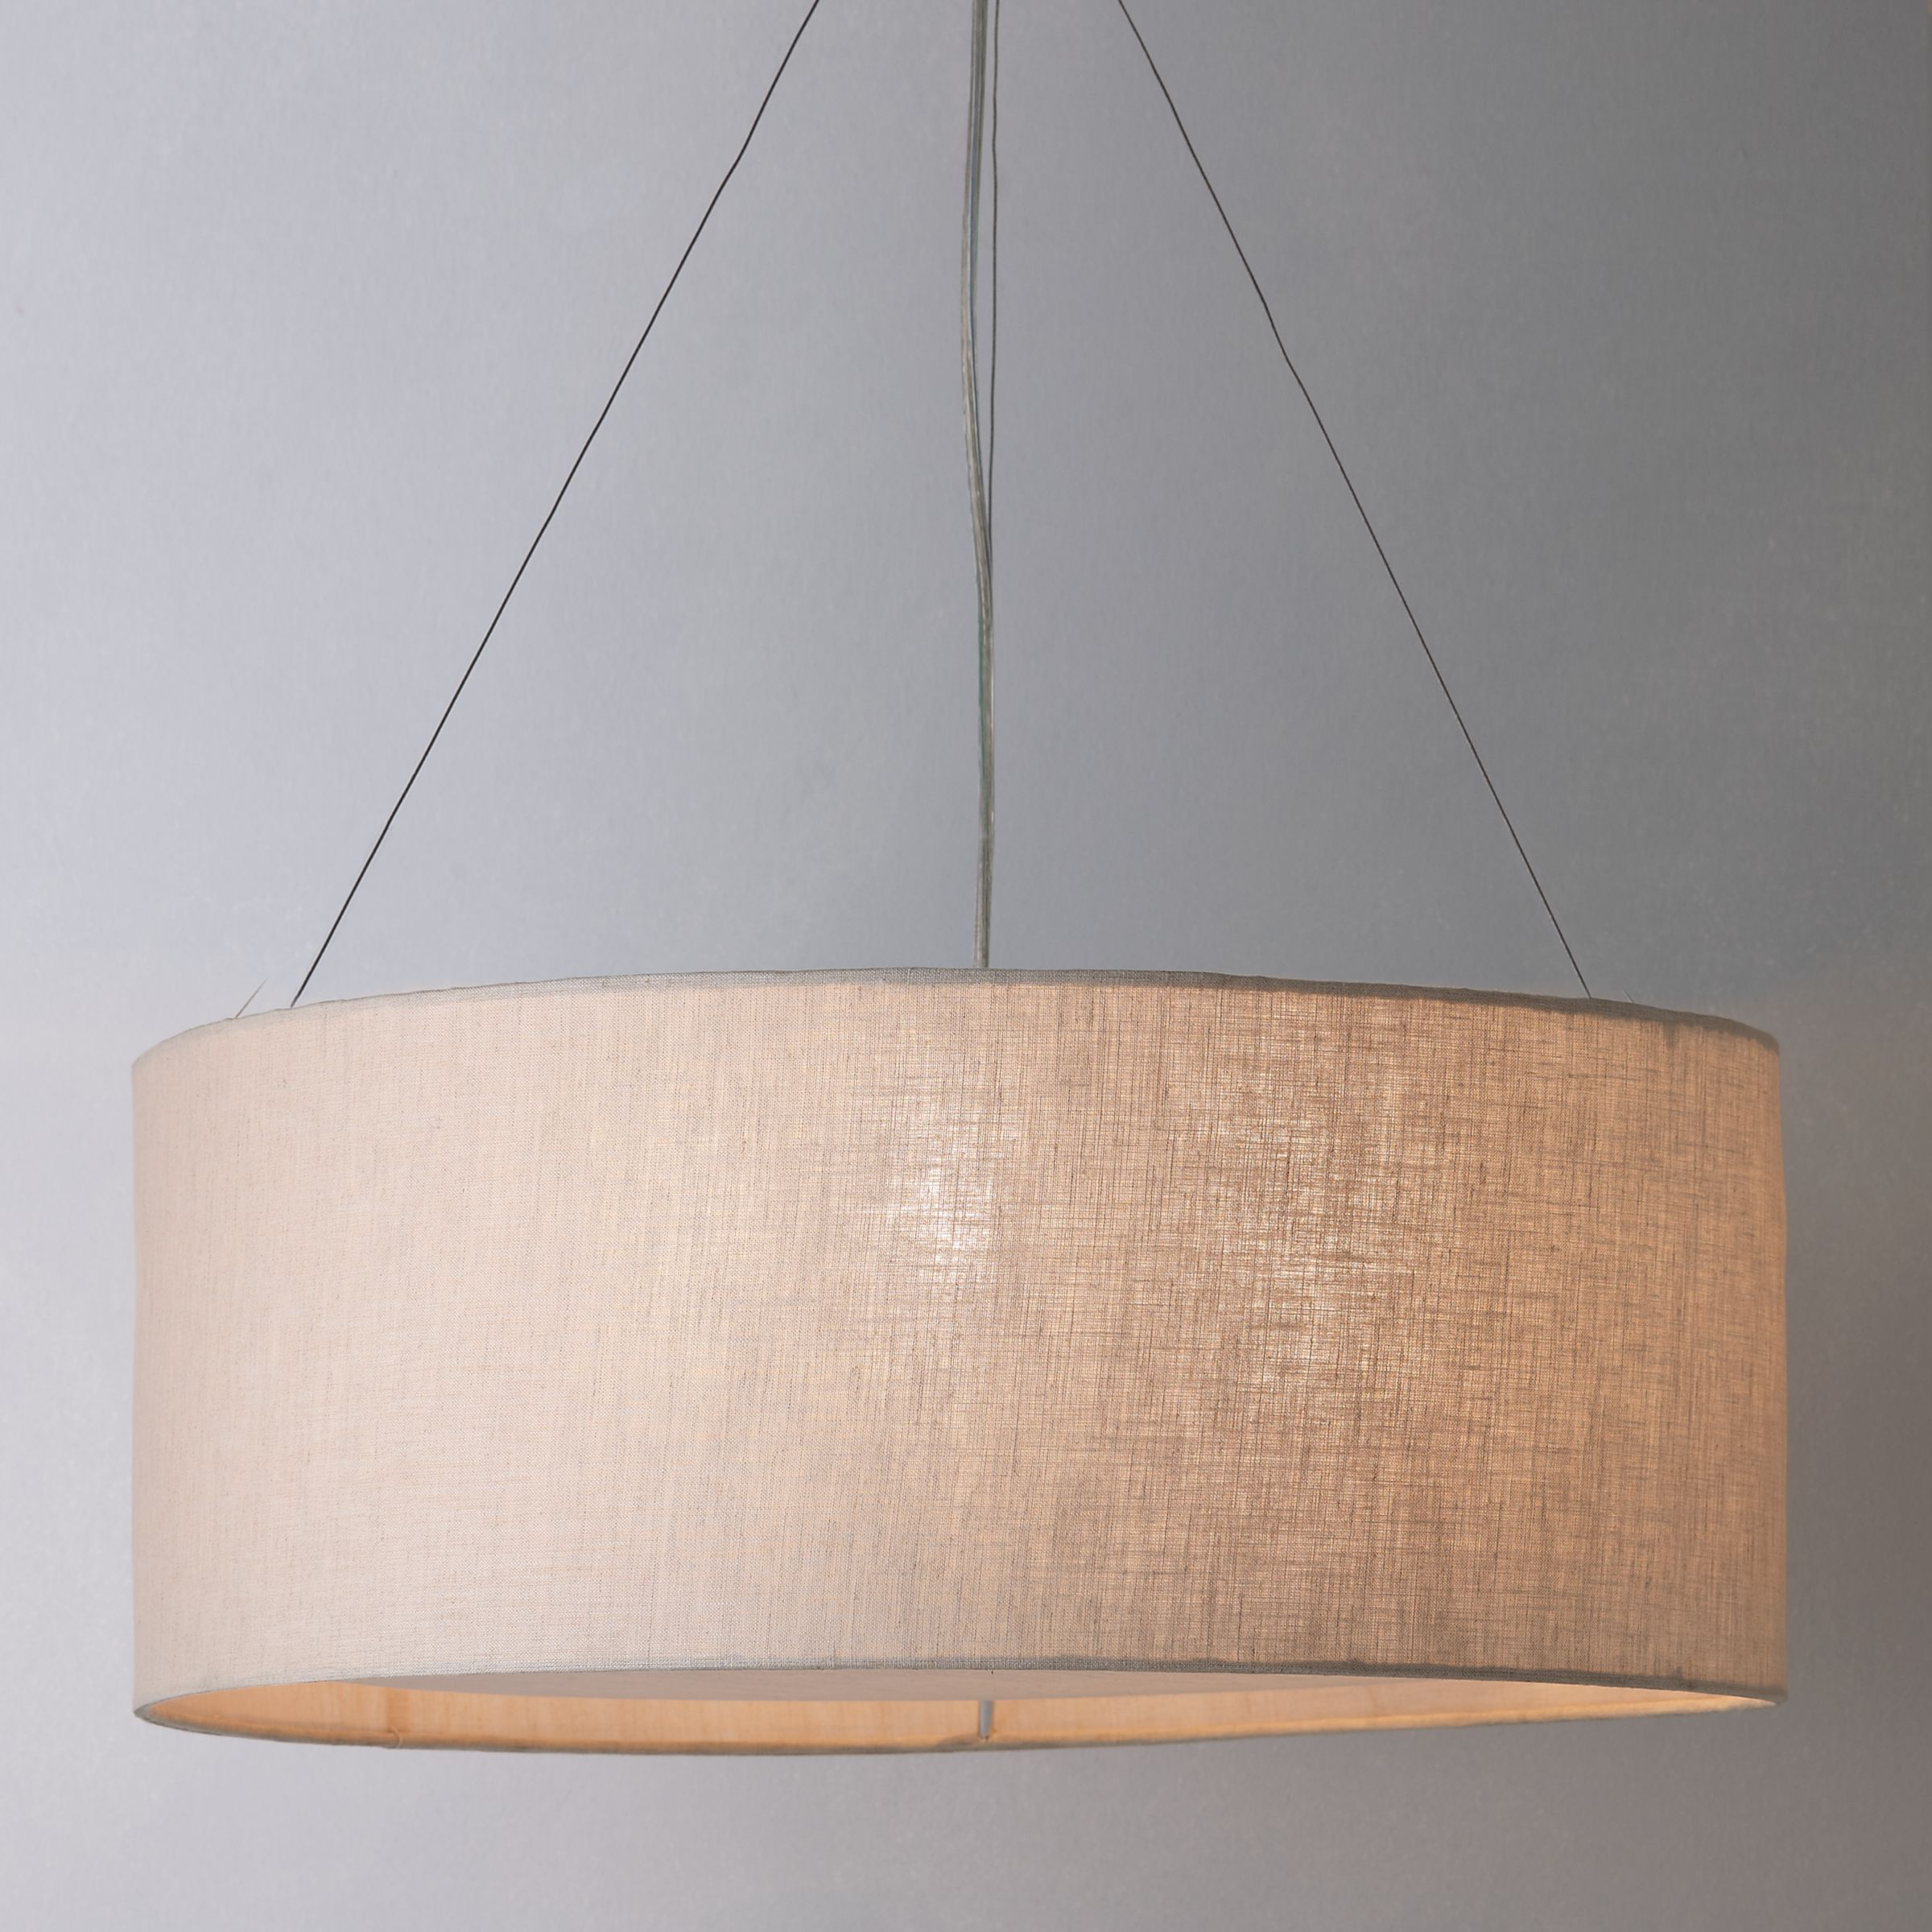 Alium Ceiling Light John Lewis : John lewis samantha linen ceiling light octer ?